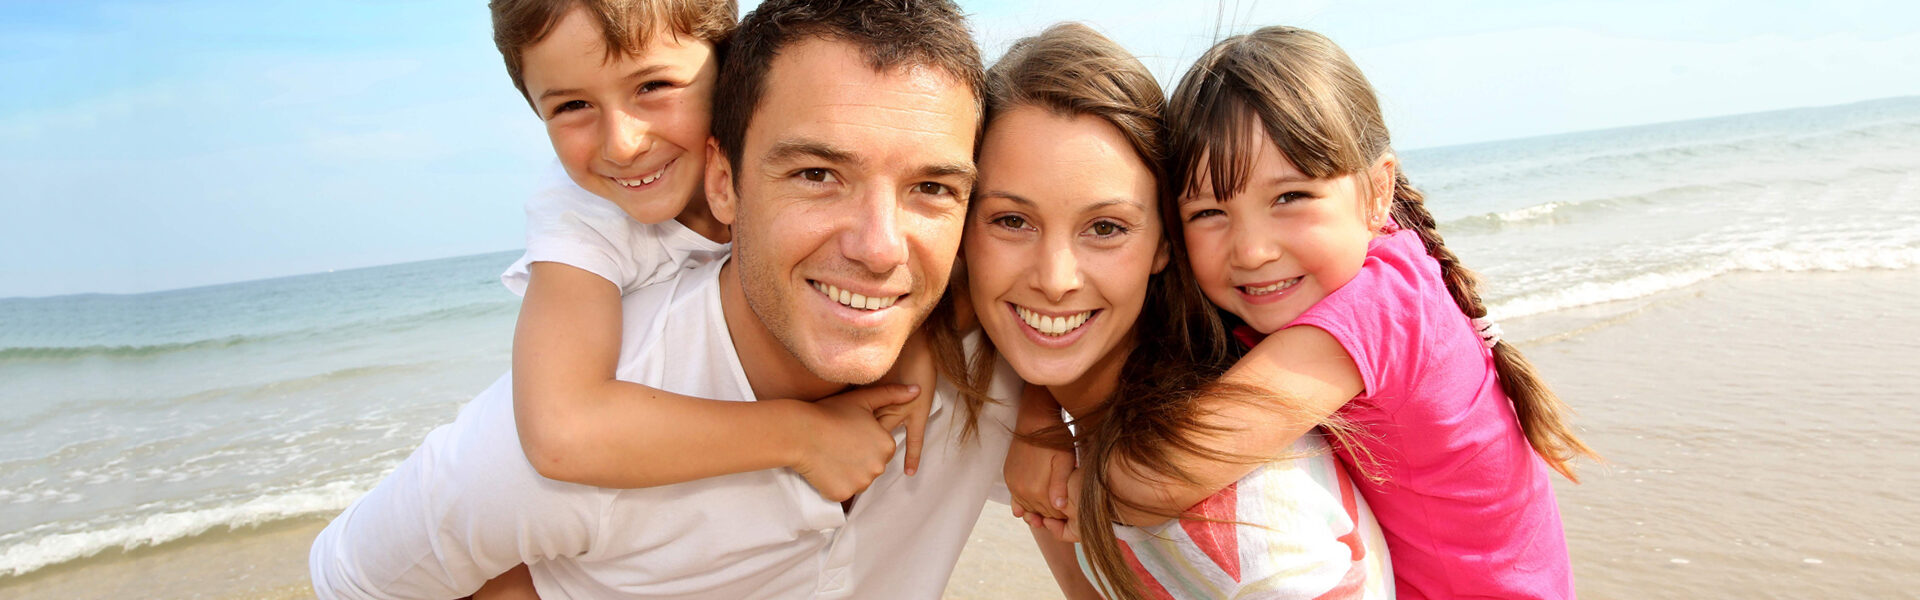 Home Dental Care Education in Concord, MA